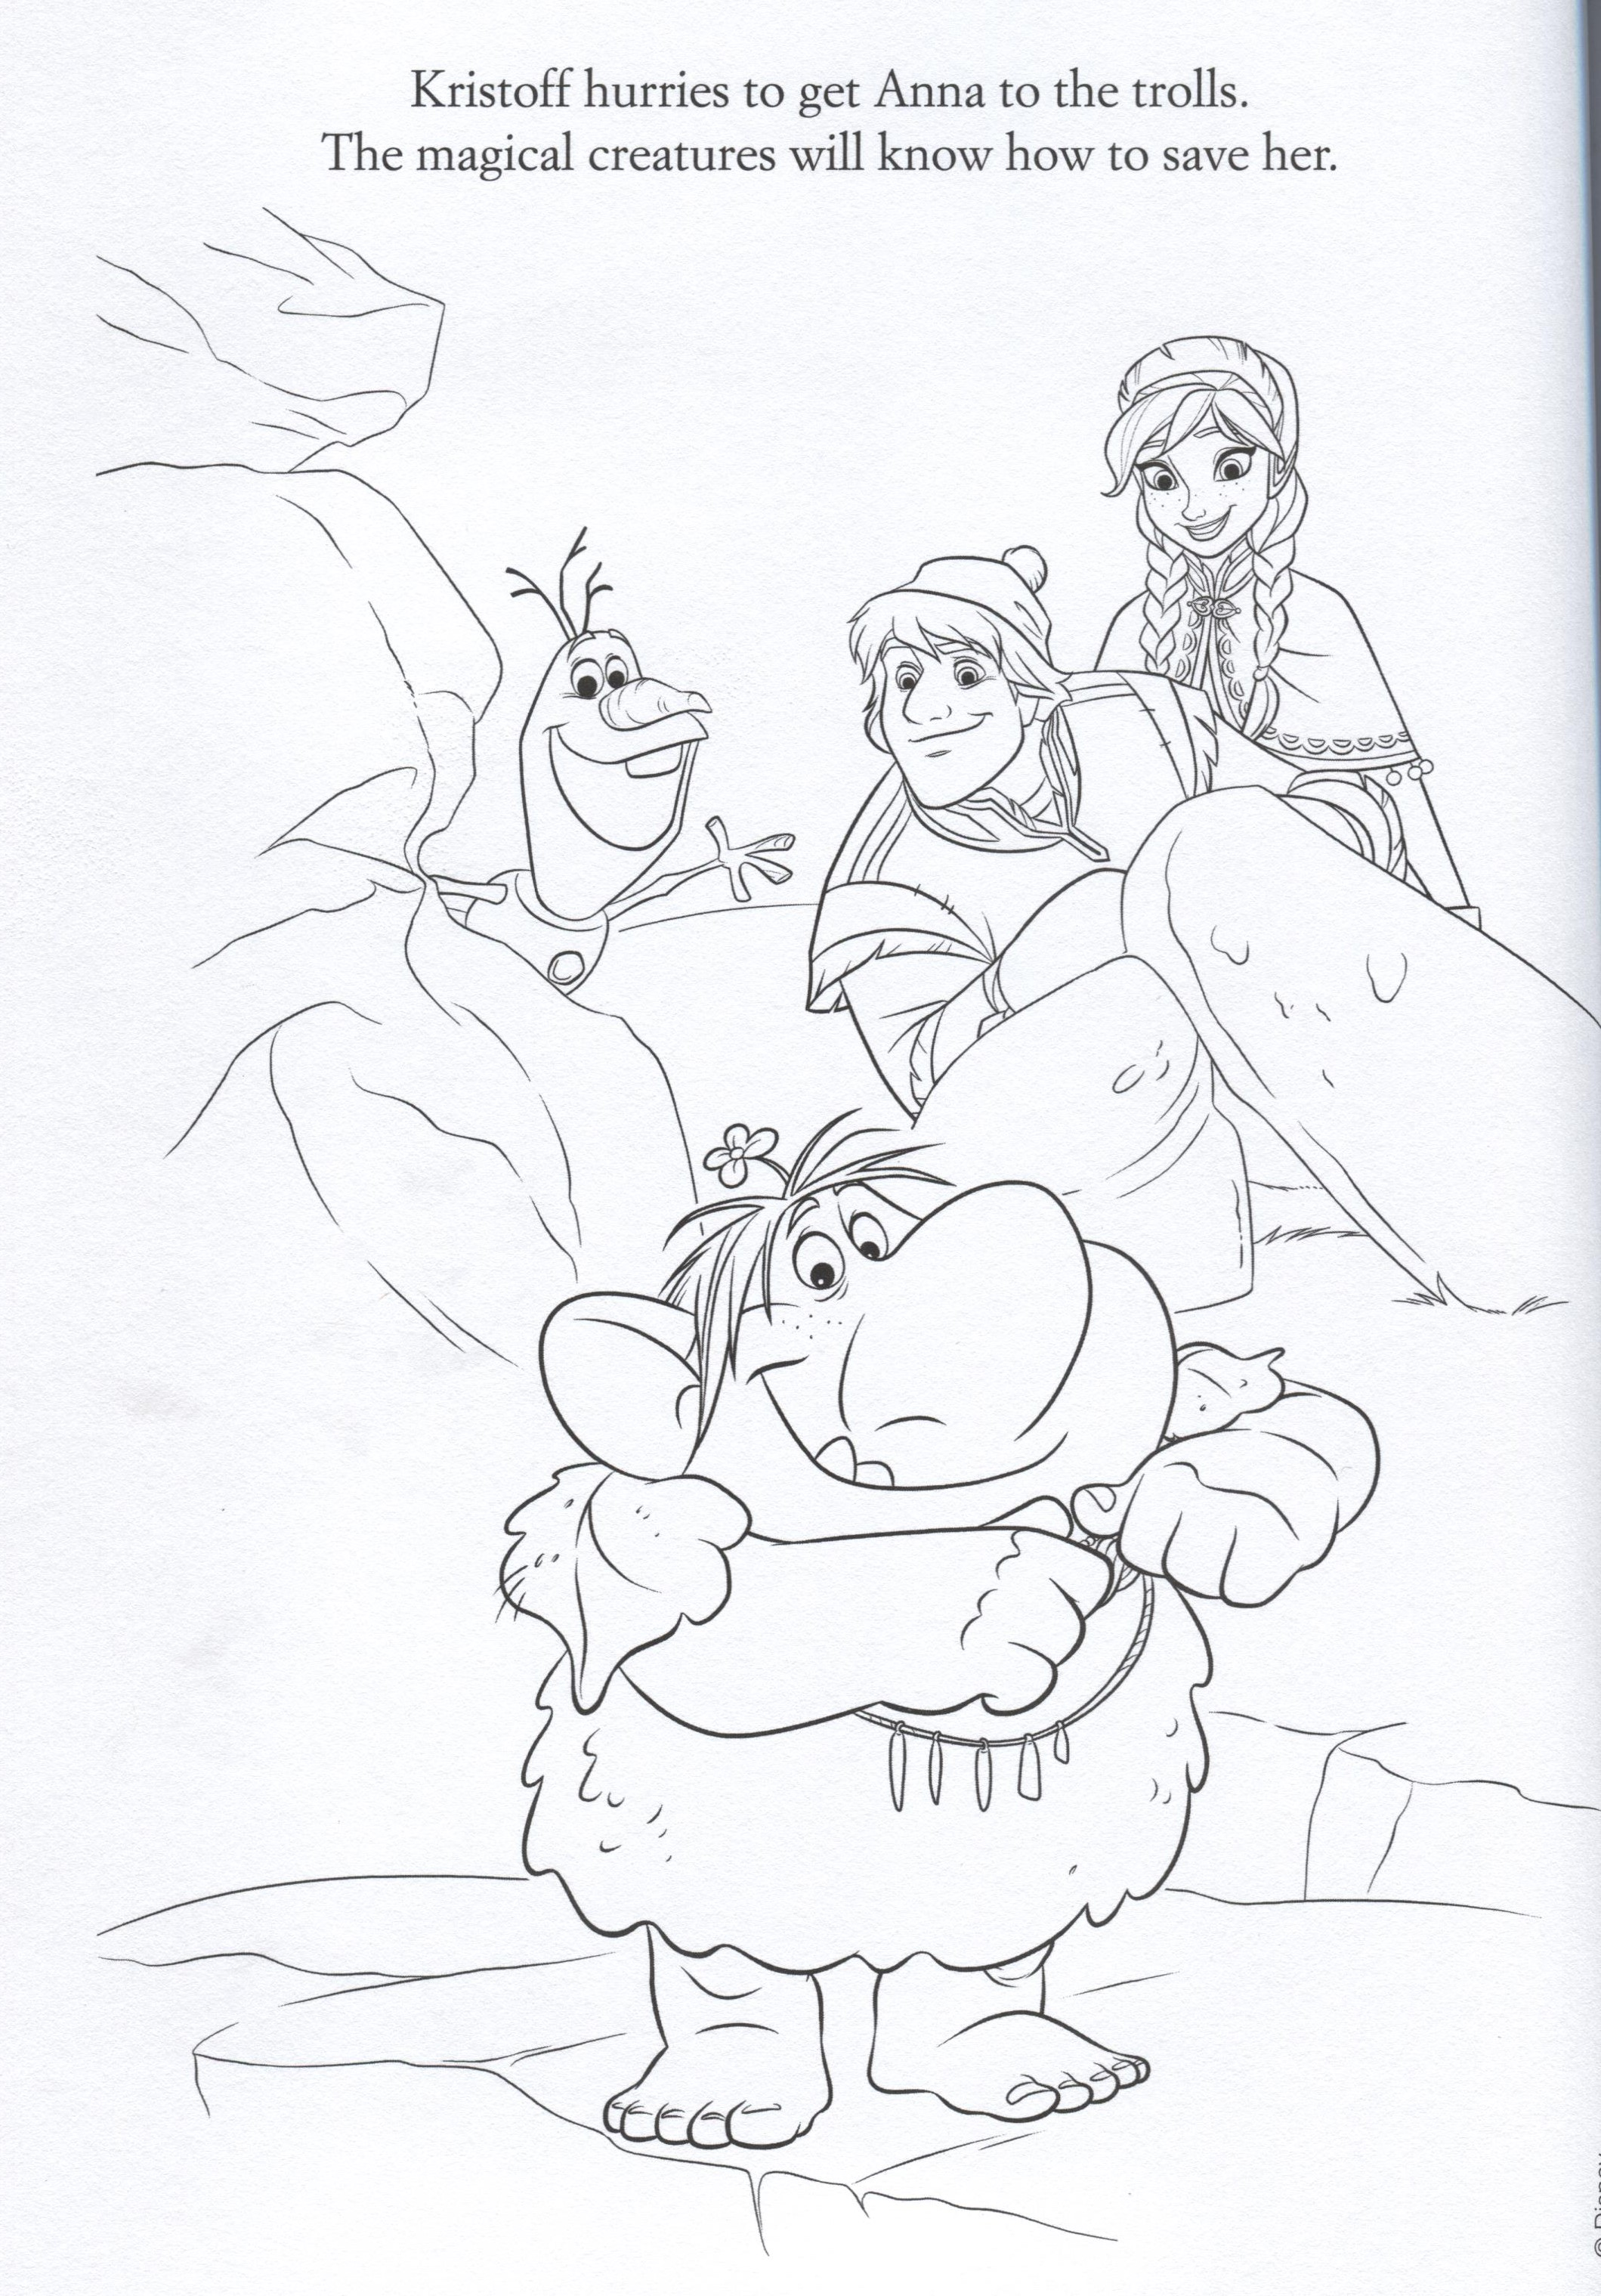 frozen images official frozen illustrations coloring pages hd wallpaper and background photos